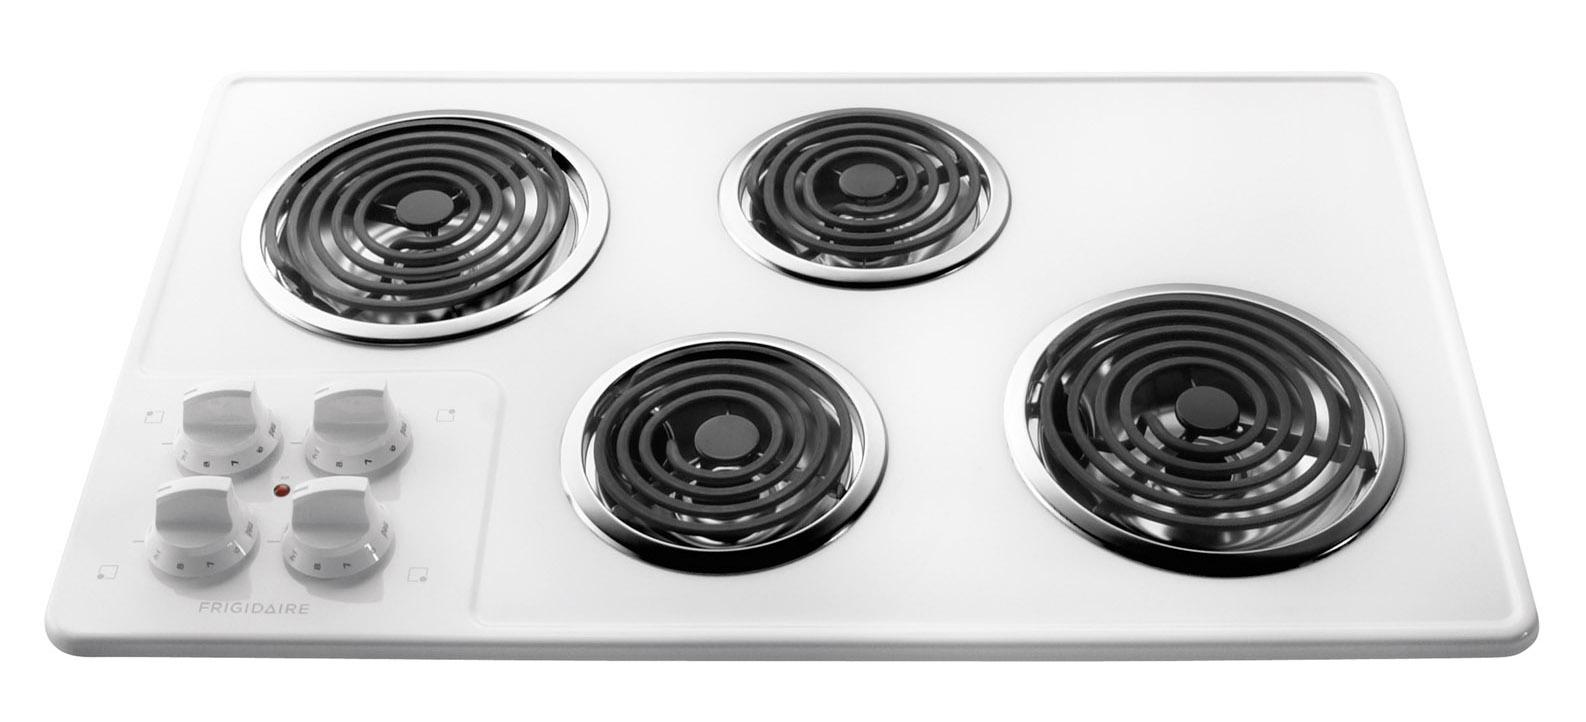 "Frigidaire Electric Cooktops 32"" Built-In Electric Cooktop - Item Number: FFEC3205LW"